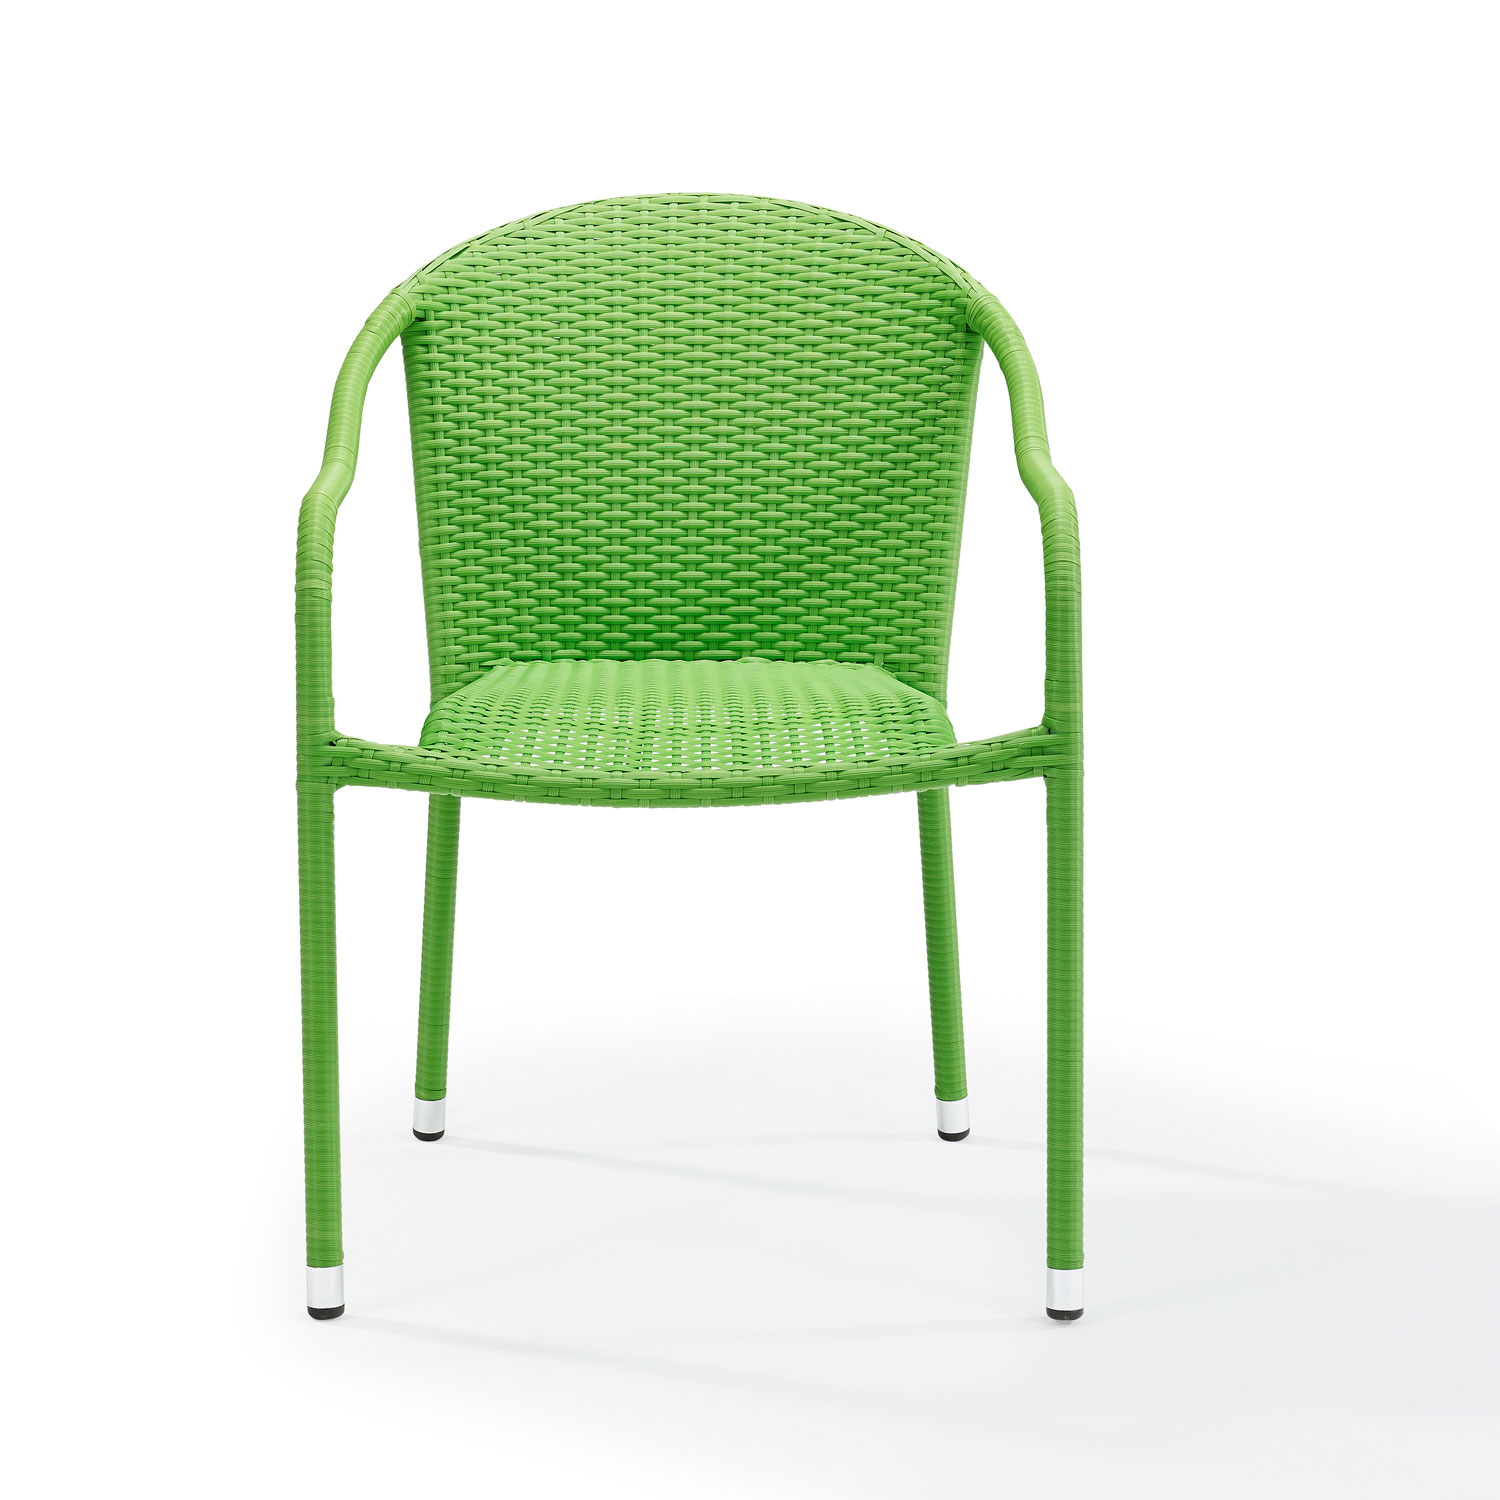 outdoor wicker furniture green photo - 3